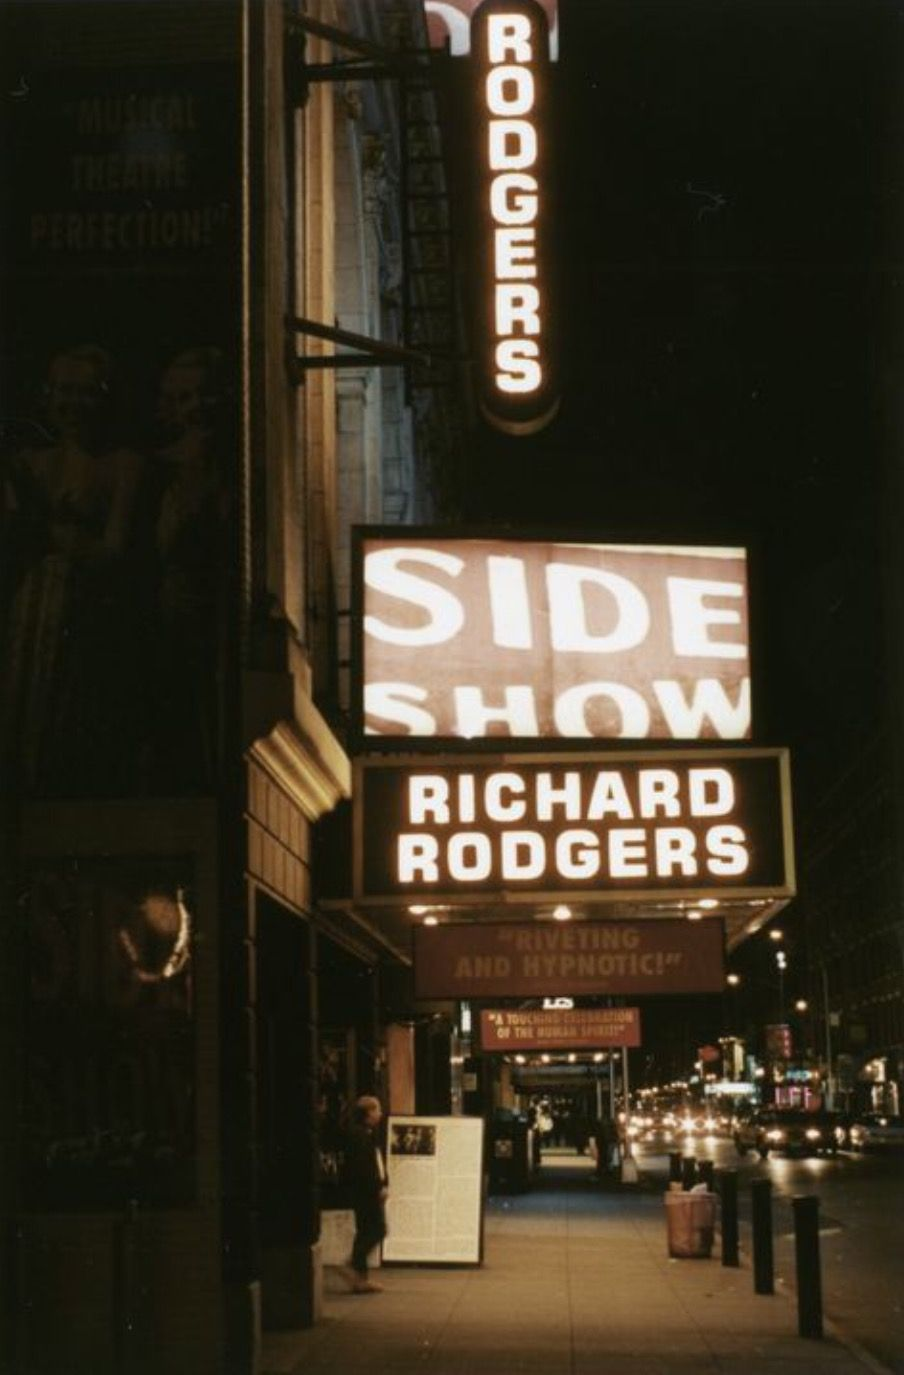 Image result for side show richard rodgers theatre marquee